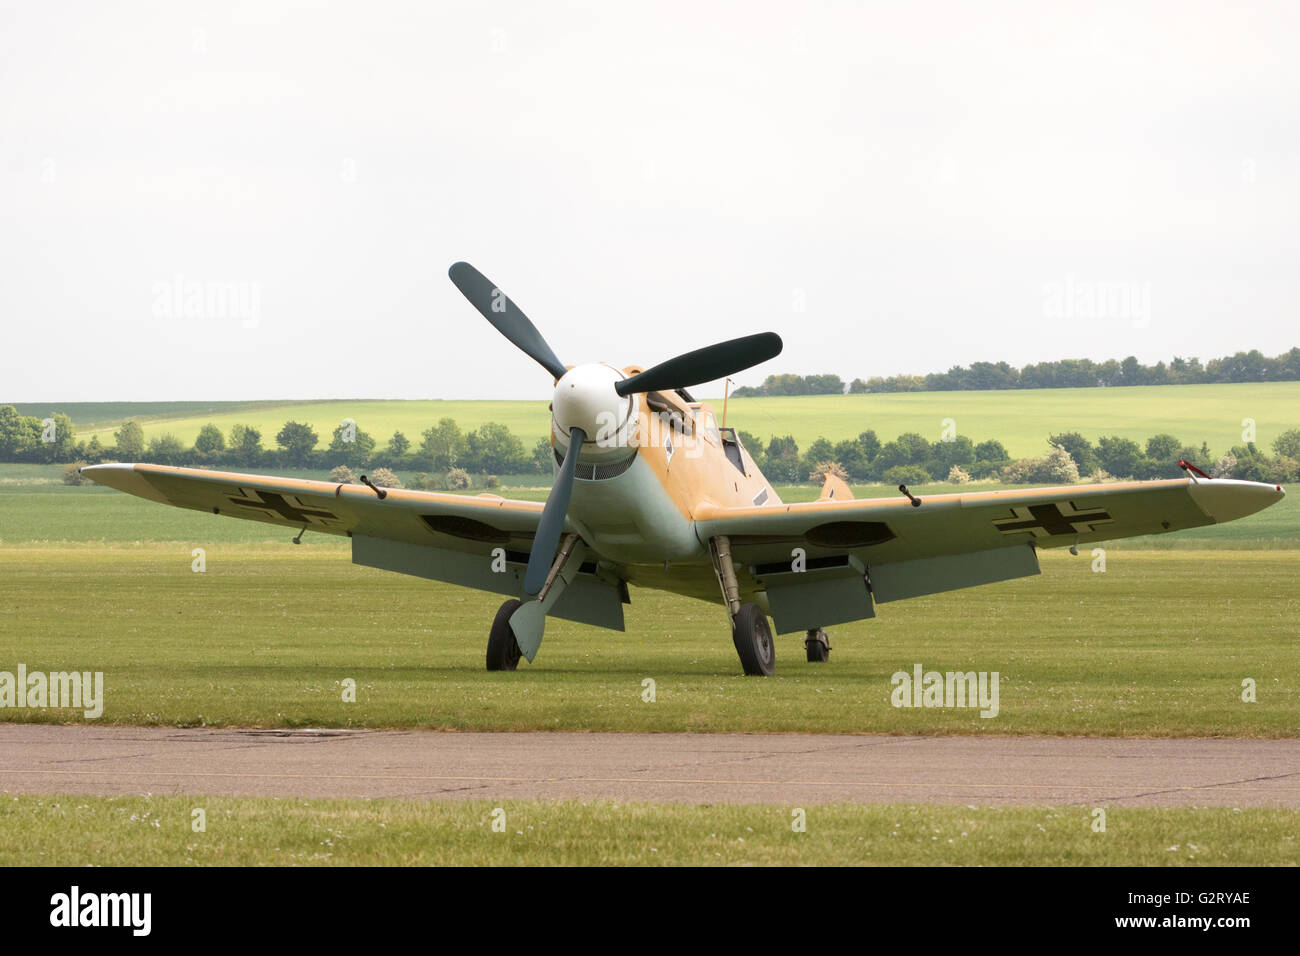 A Hispano HA-1112 Buchon fighter plane on the ground at Duxford Airport, Cambridge UK - Stock Image